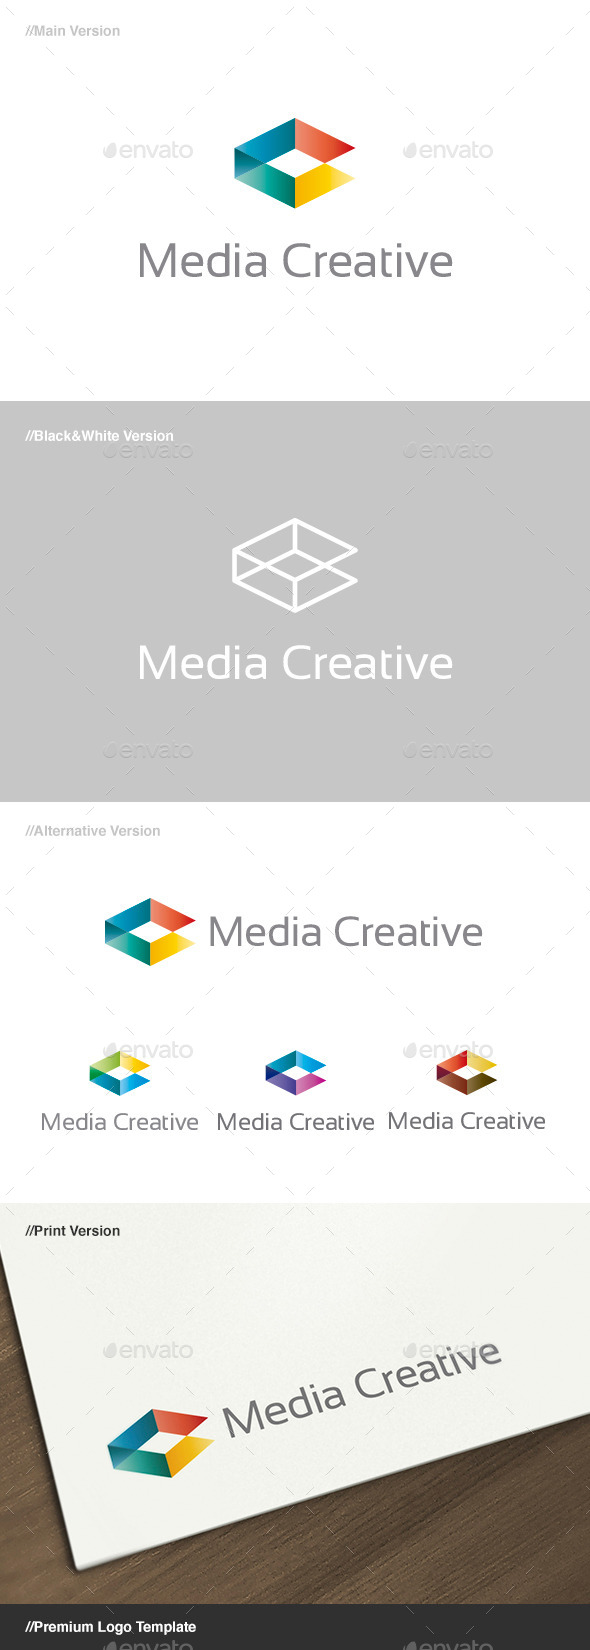 Media Creative Logo - Abstract Logo Templates